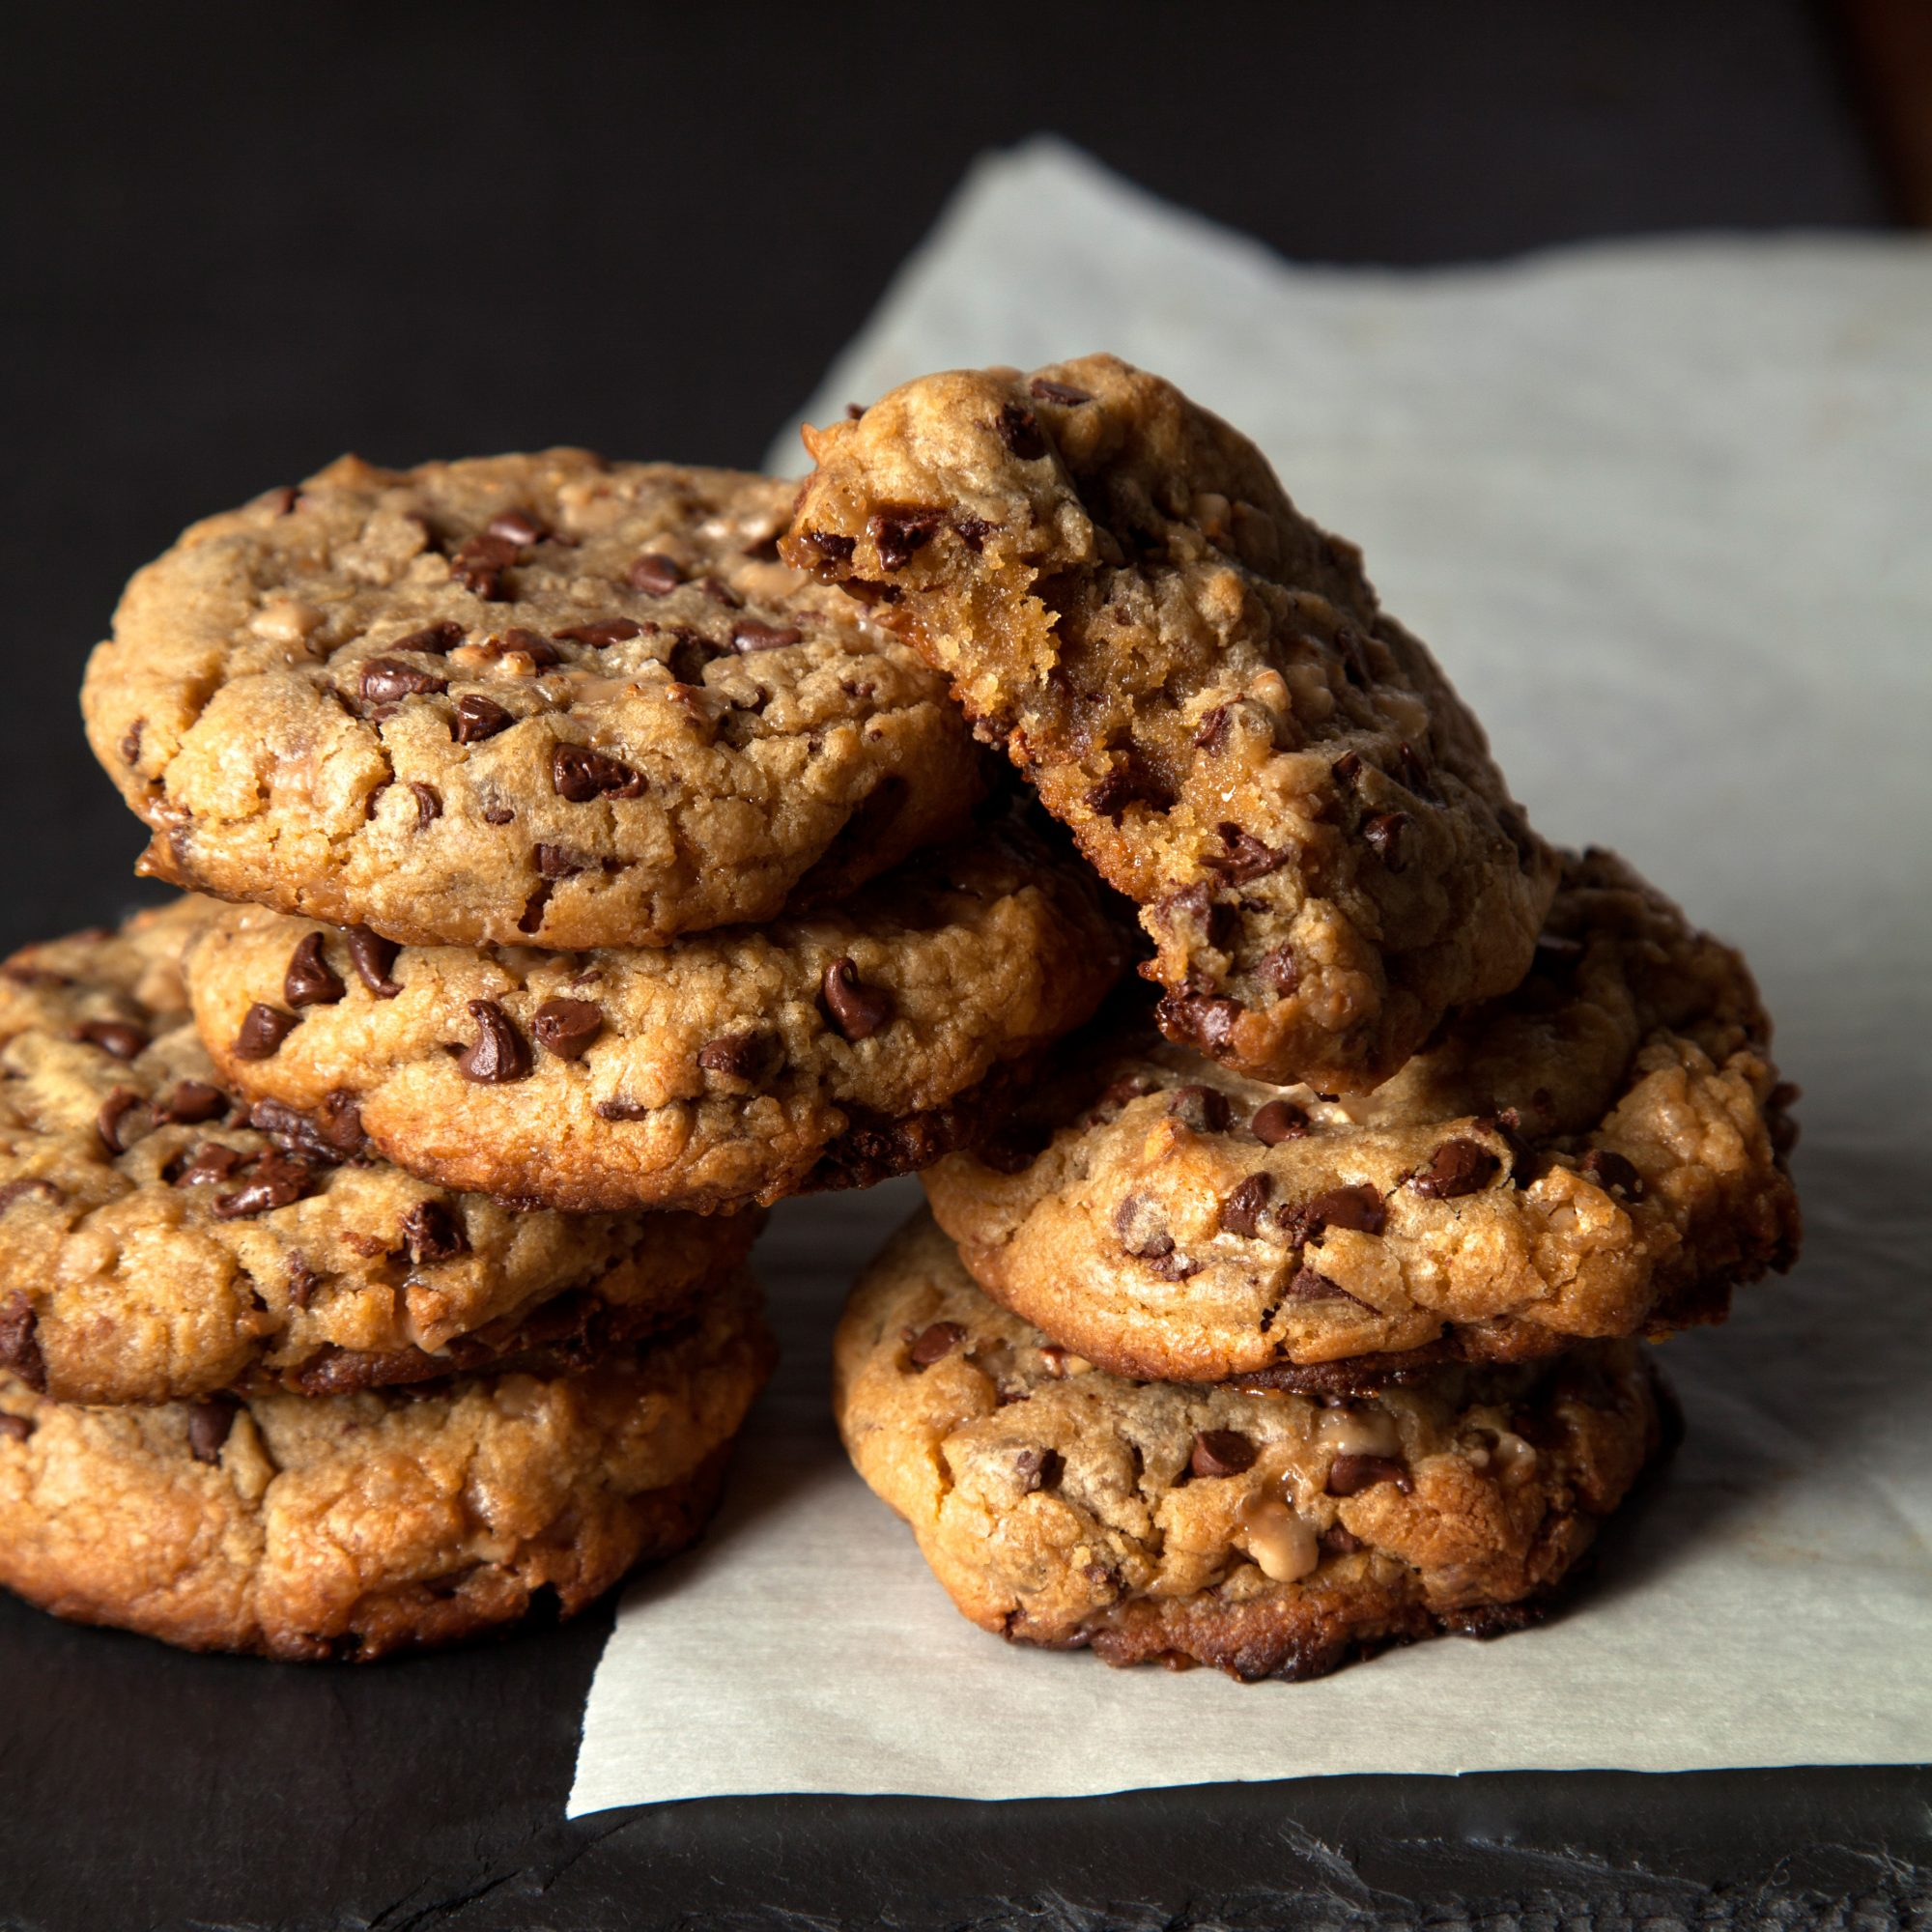 Big Bakery-Style Mini Chocolate Chip Toffee Cookies